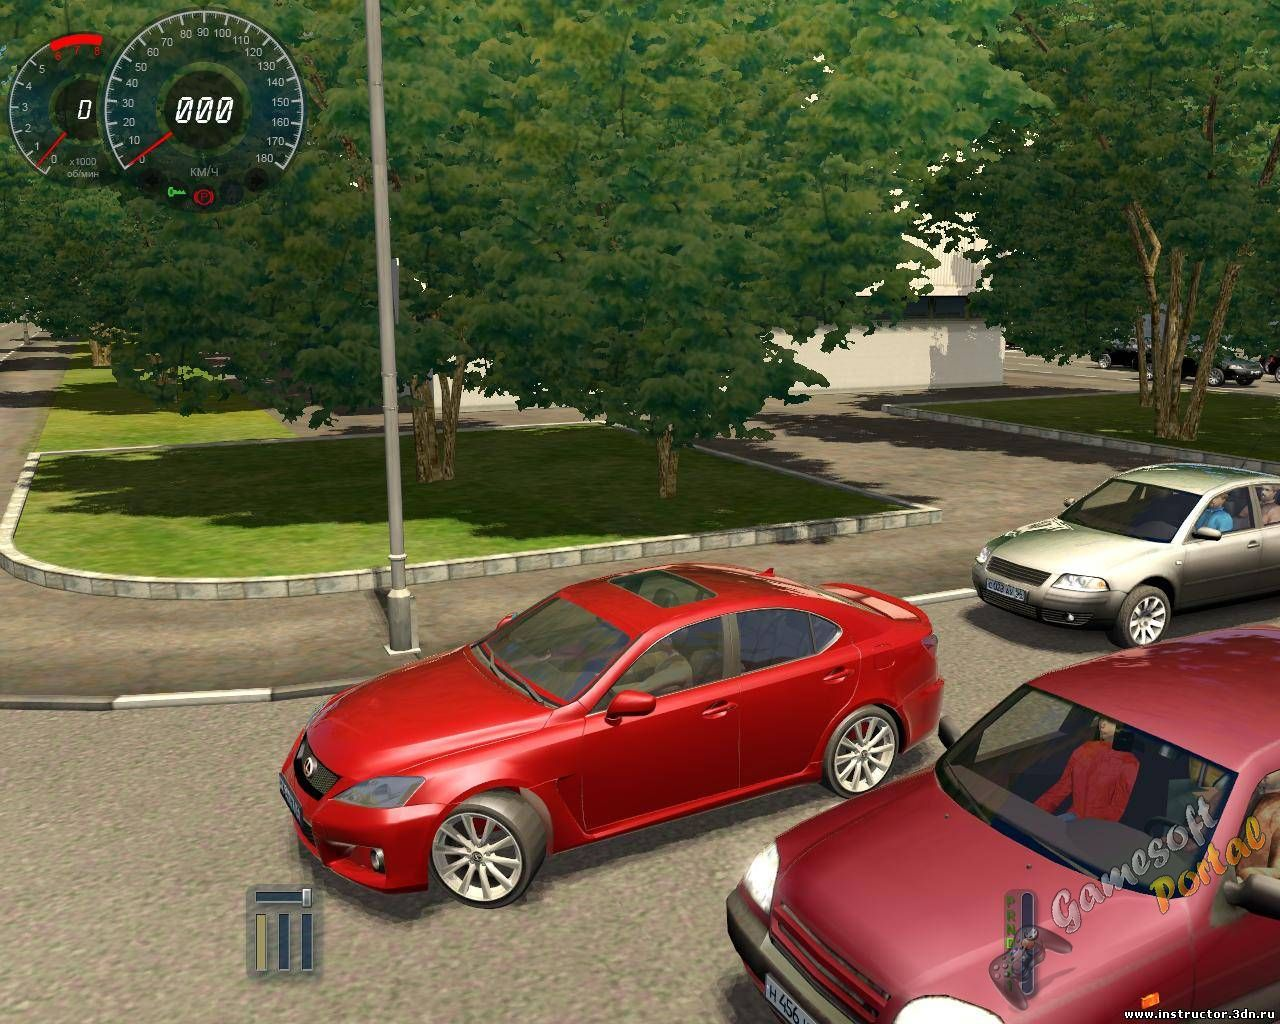 Lexus IS F для 3D Инструктор 2.2.8 - 2.2.10